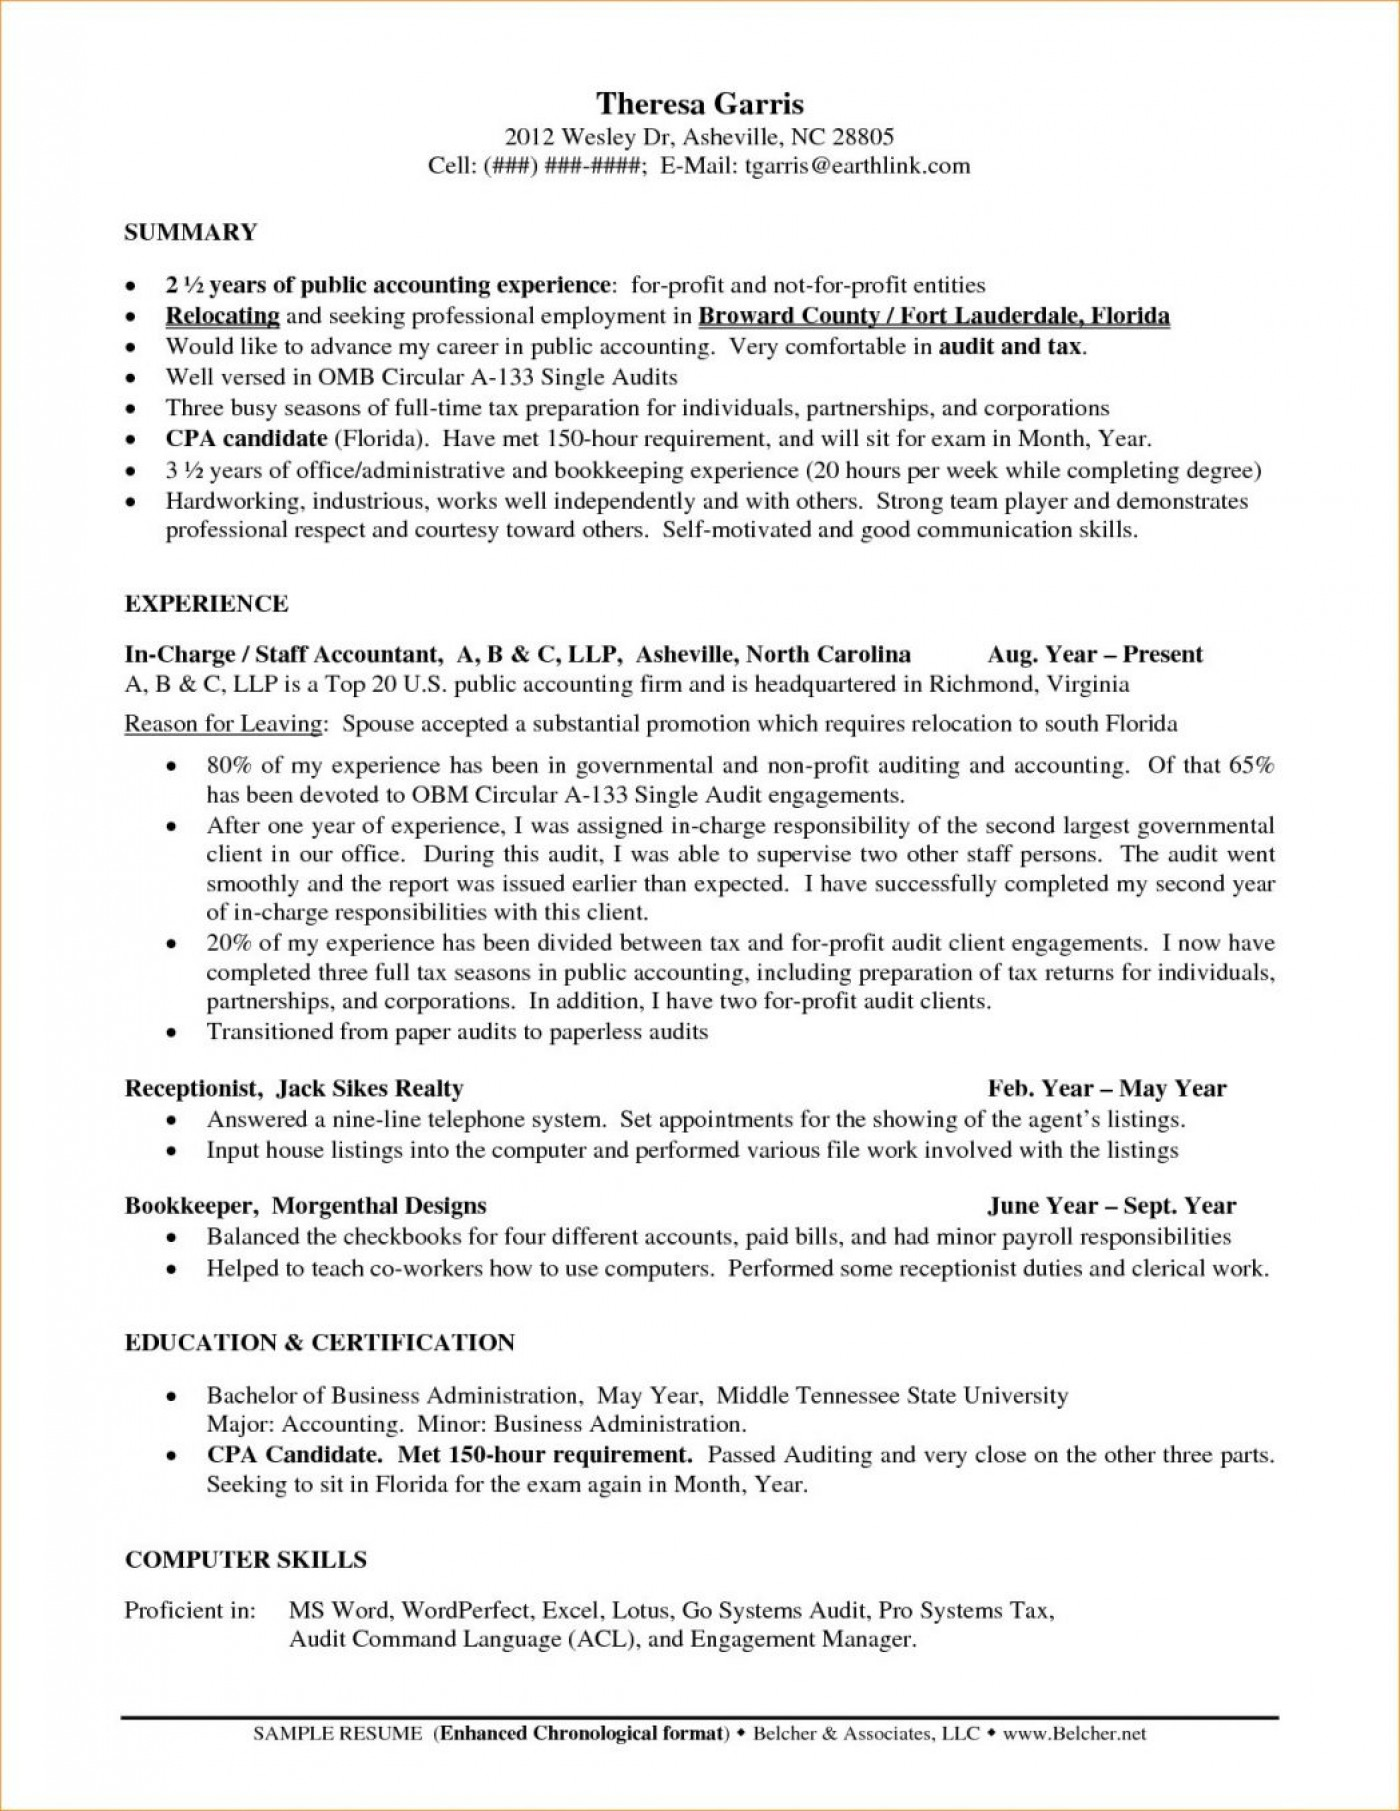 024 Essay Example Best Solutions Of Professional Mba Reflective Help Mri Tech Writing On Teaching Sample Cover Grea Leadership Introduction Using Gibbs Model In Third Person Work Experience Beautiful Examples About Life Pdf Apa 1400